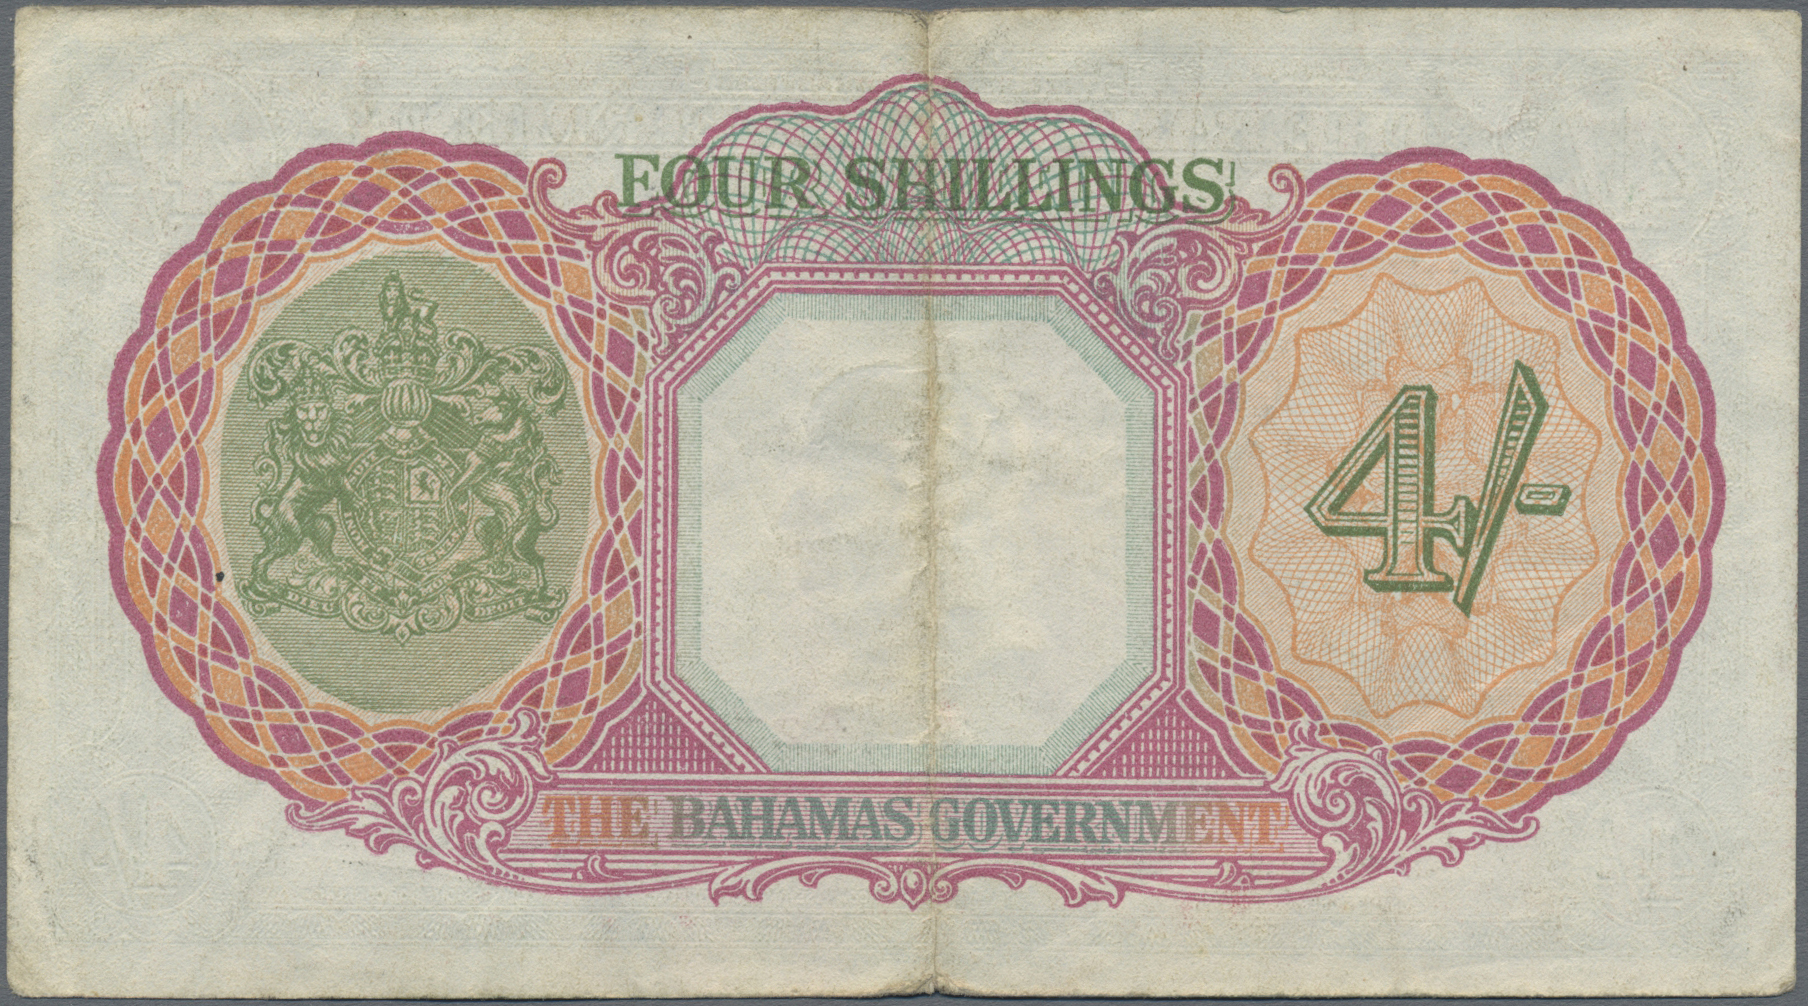 Lot 00056 - Bahamas | Banknoten  -  Auktionshaus Christoph Gärtner GmbH & Co. KG Sale #48 The Banknotes